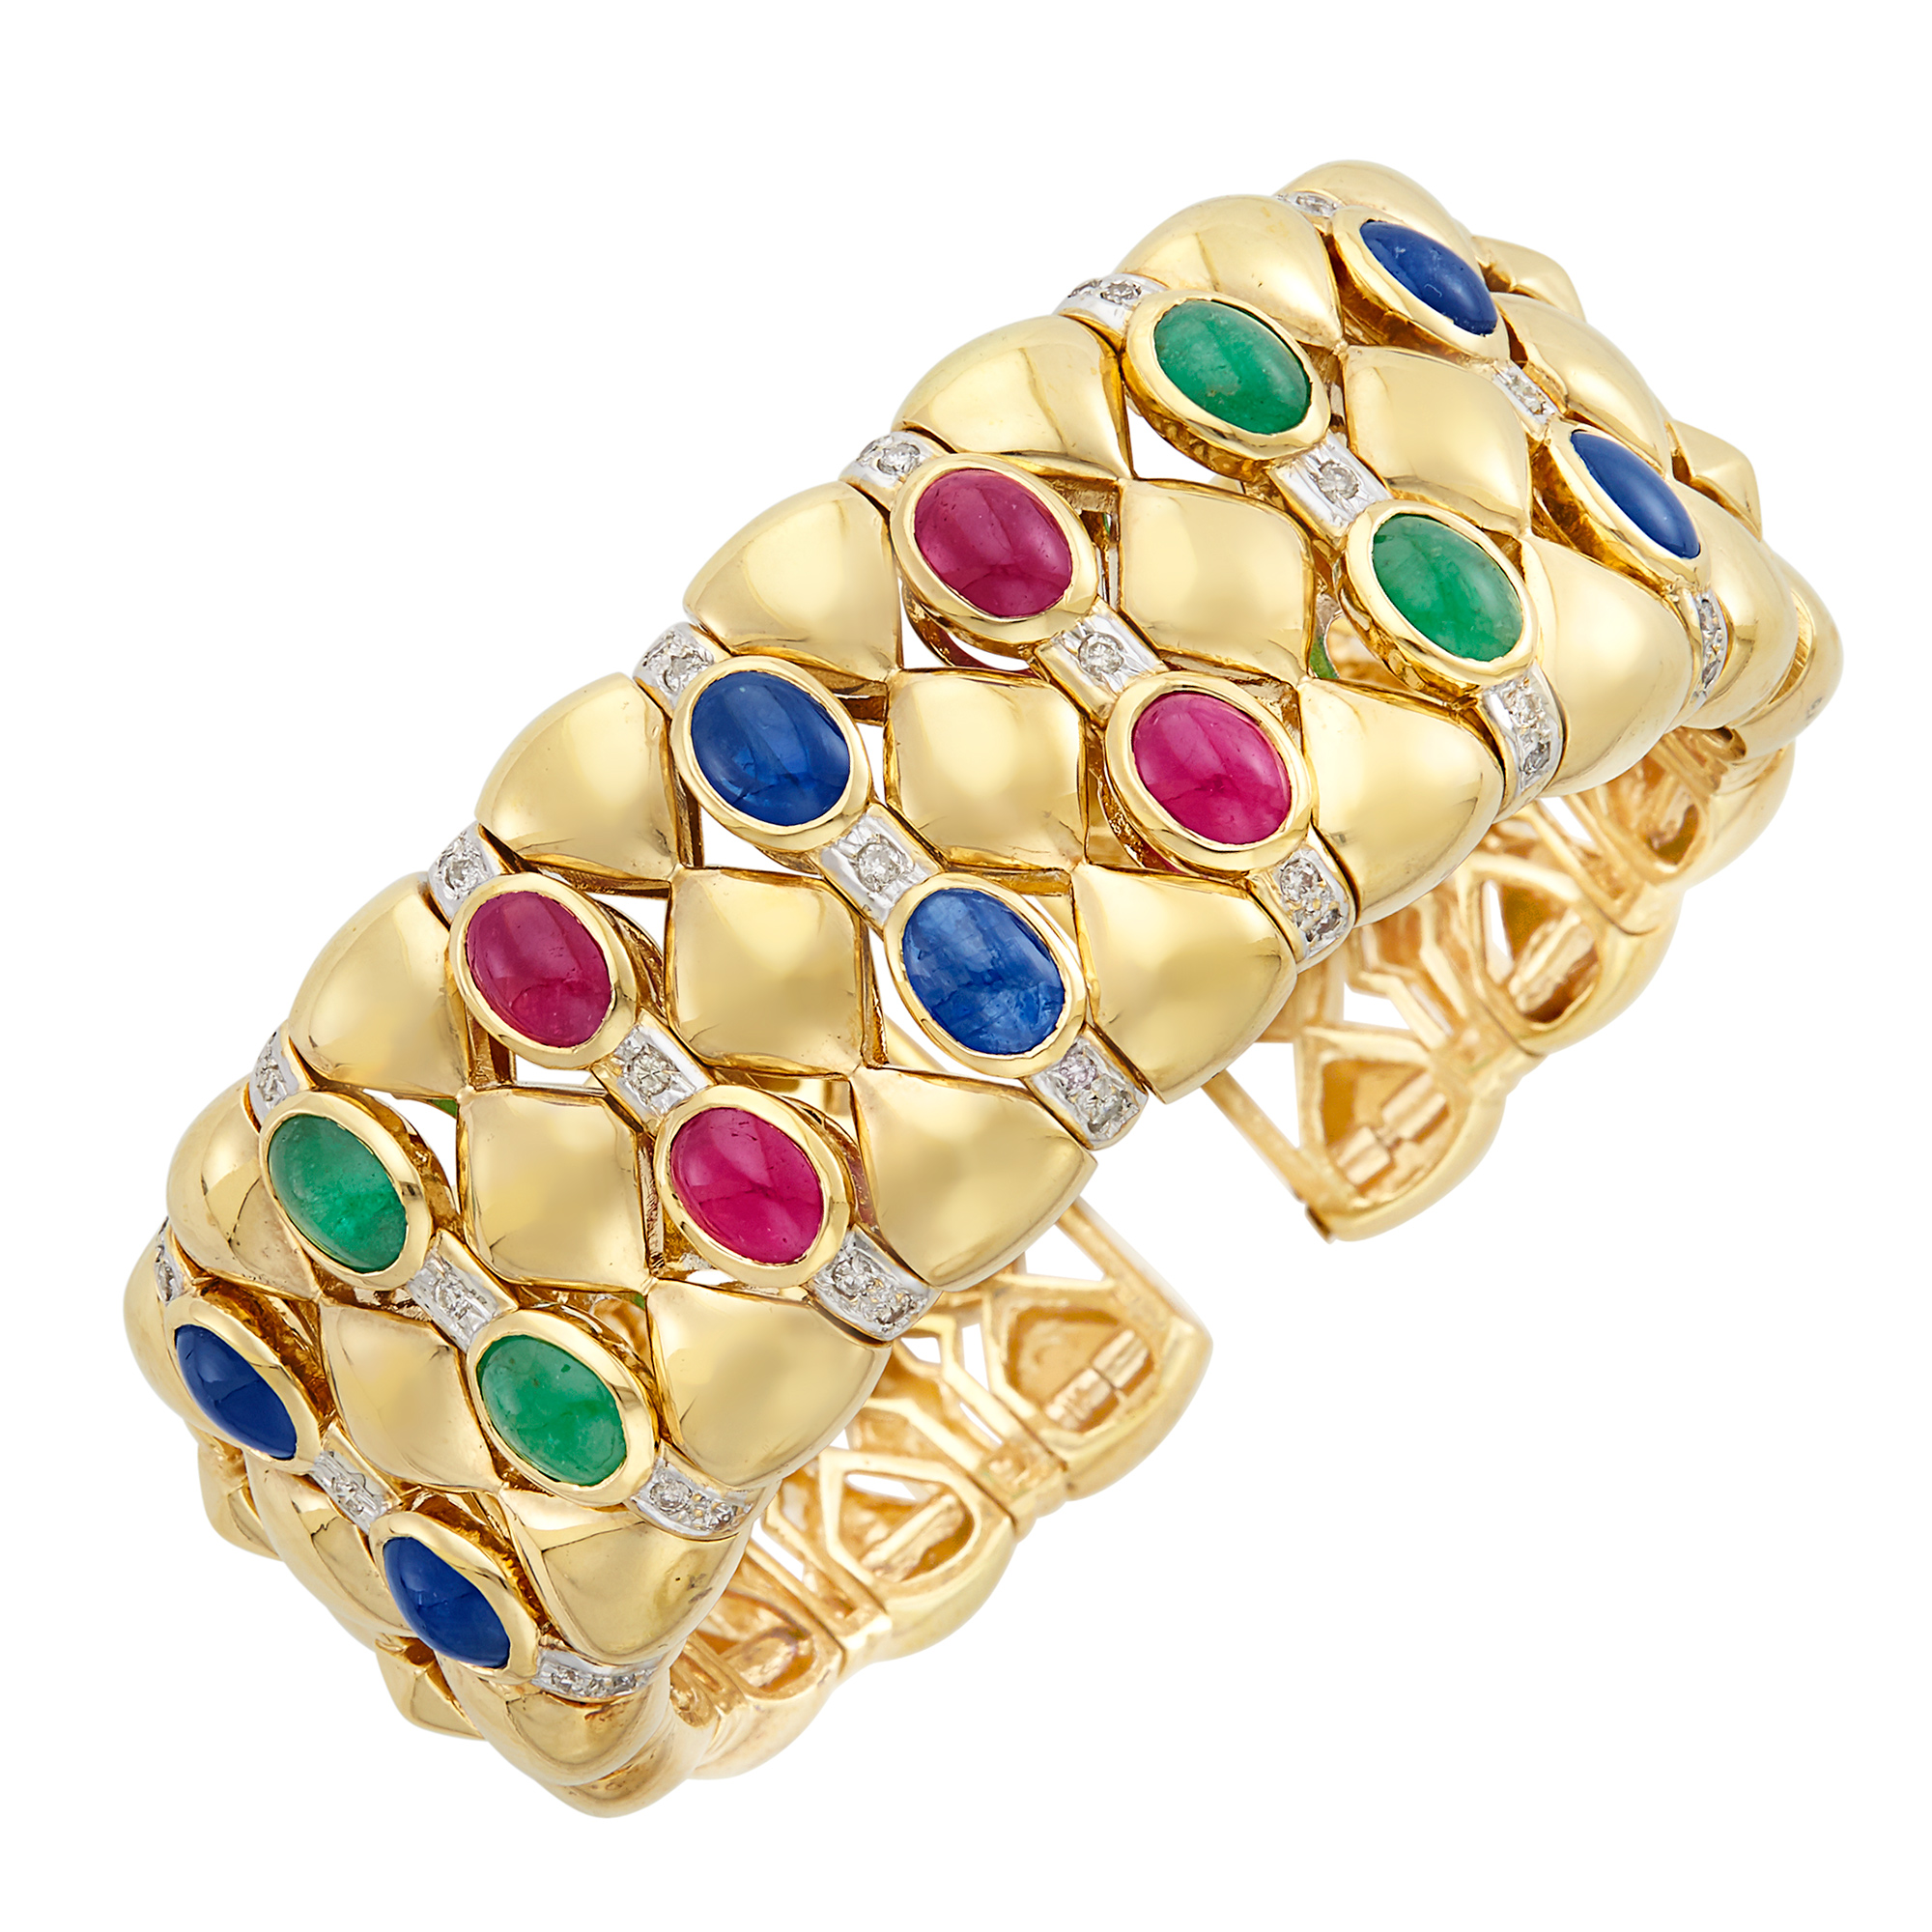 Lot image - Gold, Cabochon Colored Stone and Diamond Cuff Bracelet